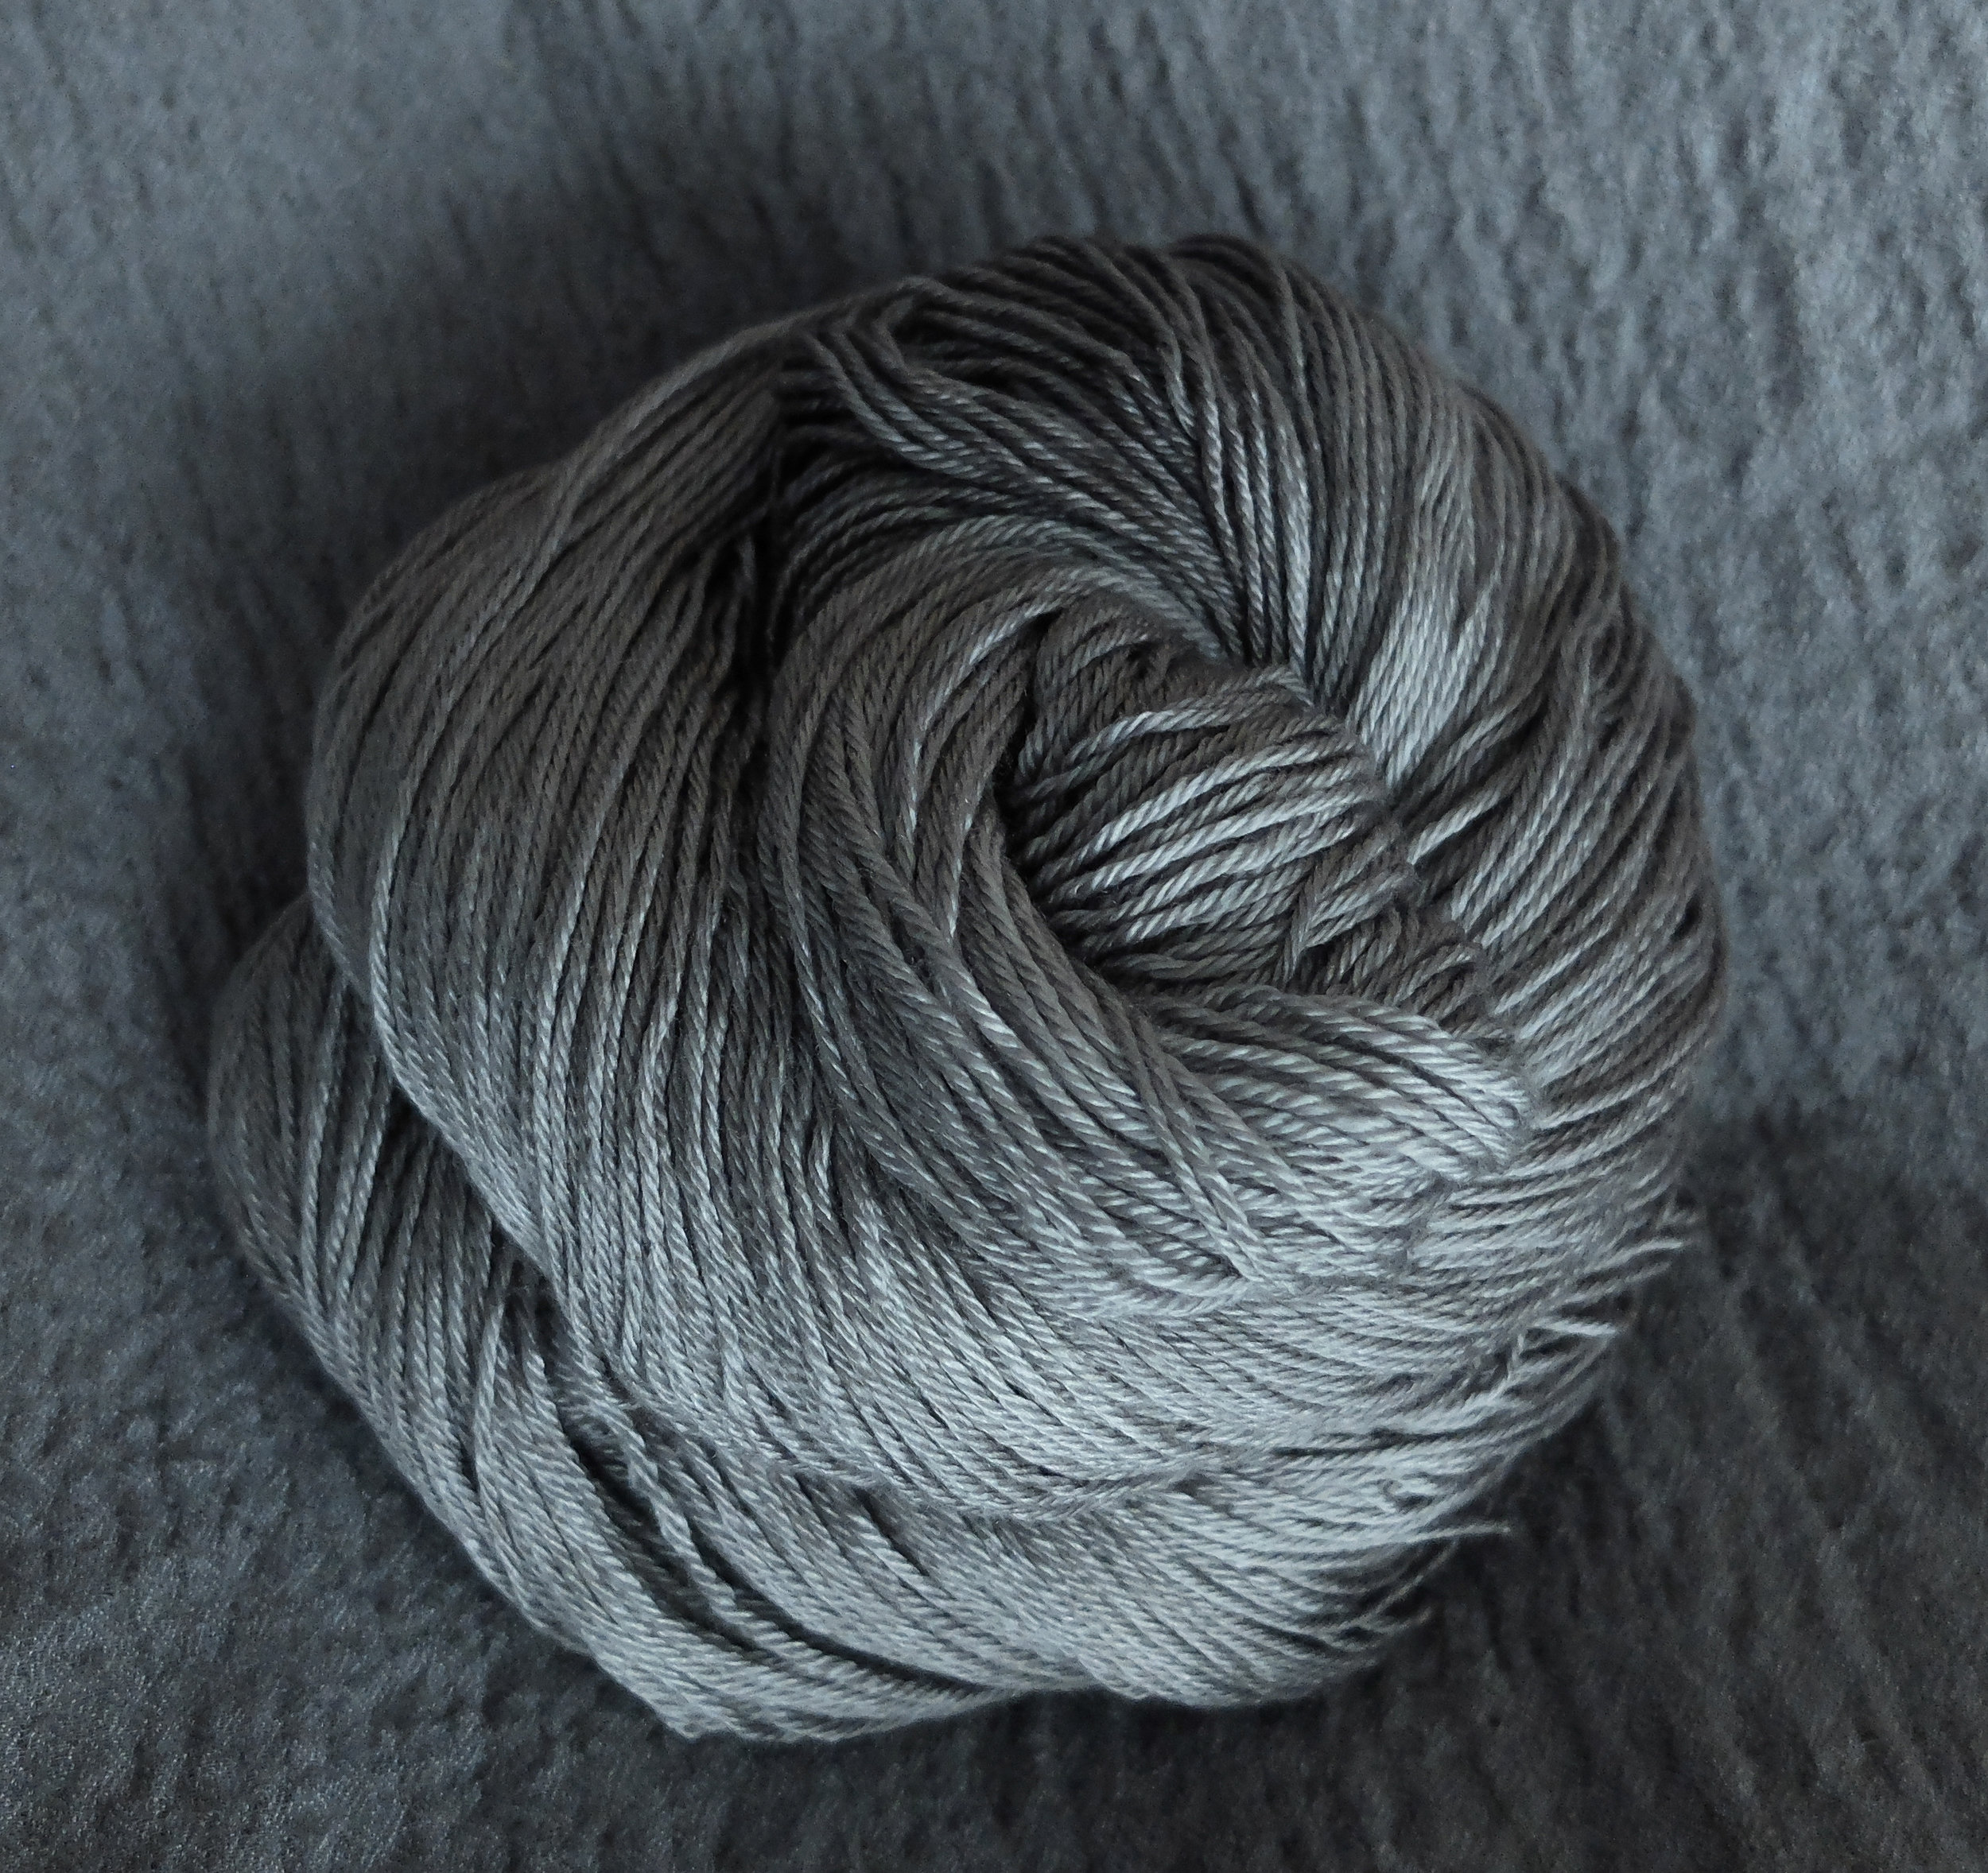 Fingering - Merino/Silk - 50 % Merino 50% Silk400 meters per 100 gram skeinA super soft and shiny base with the best qualities from both merino and silk. This yarn will give you a wonderfully soft and drapey fabric. This yarn is not superwash treated